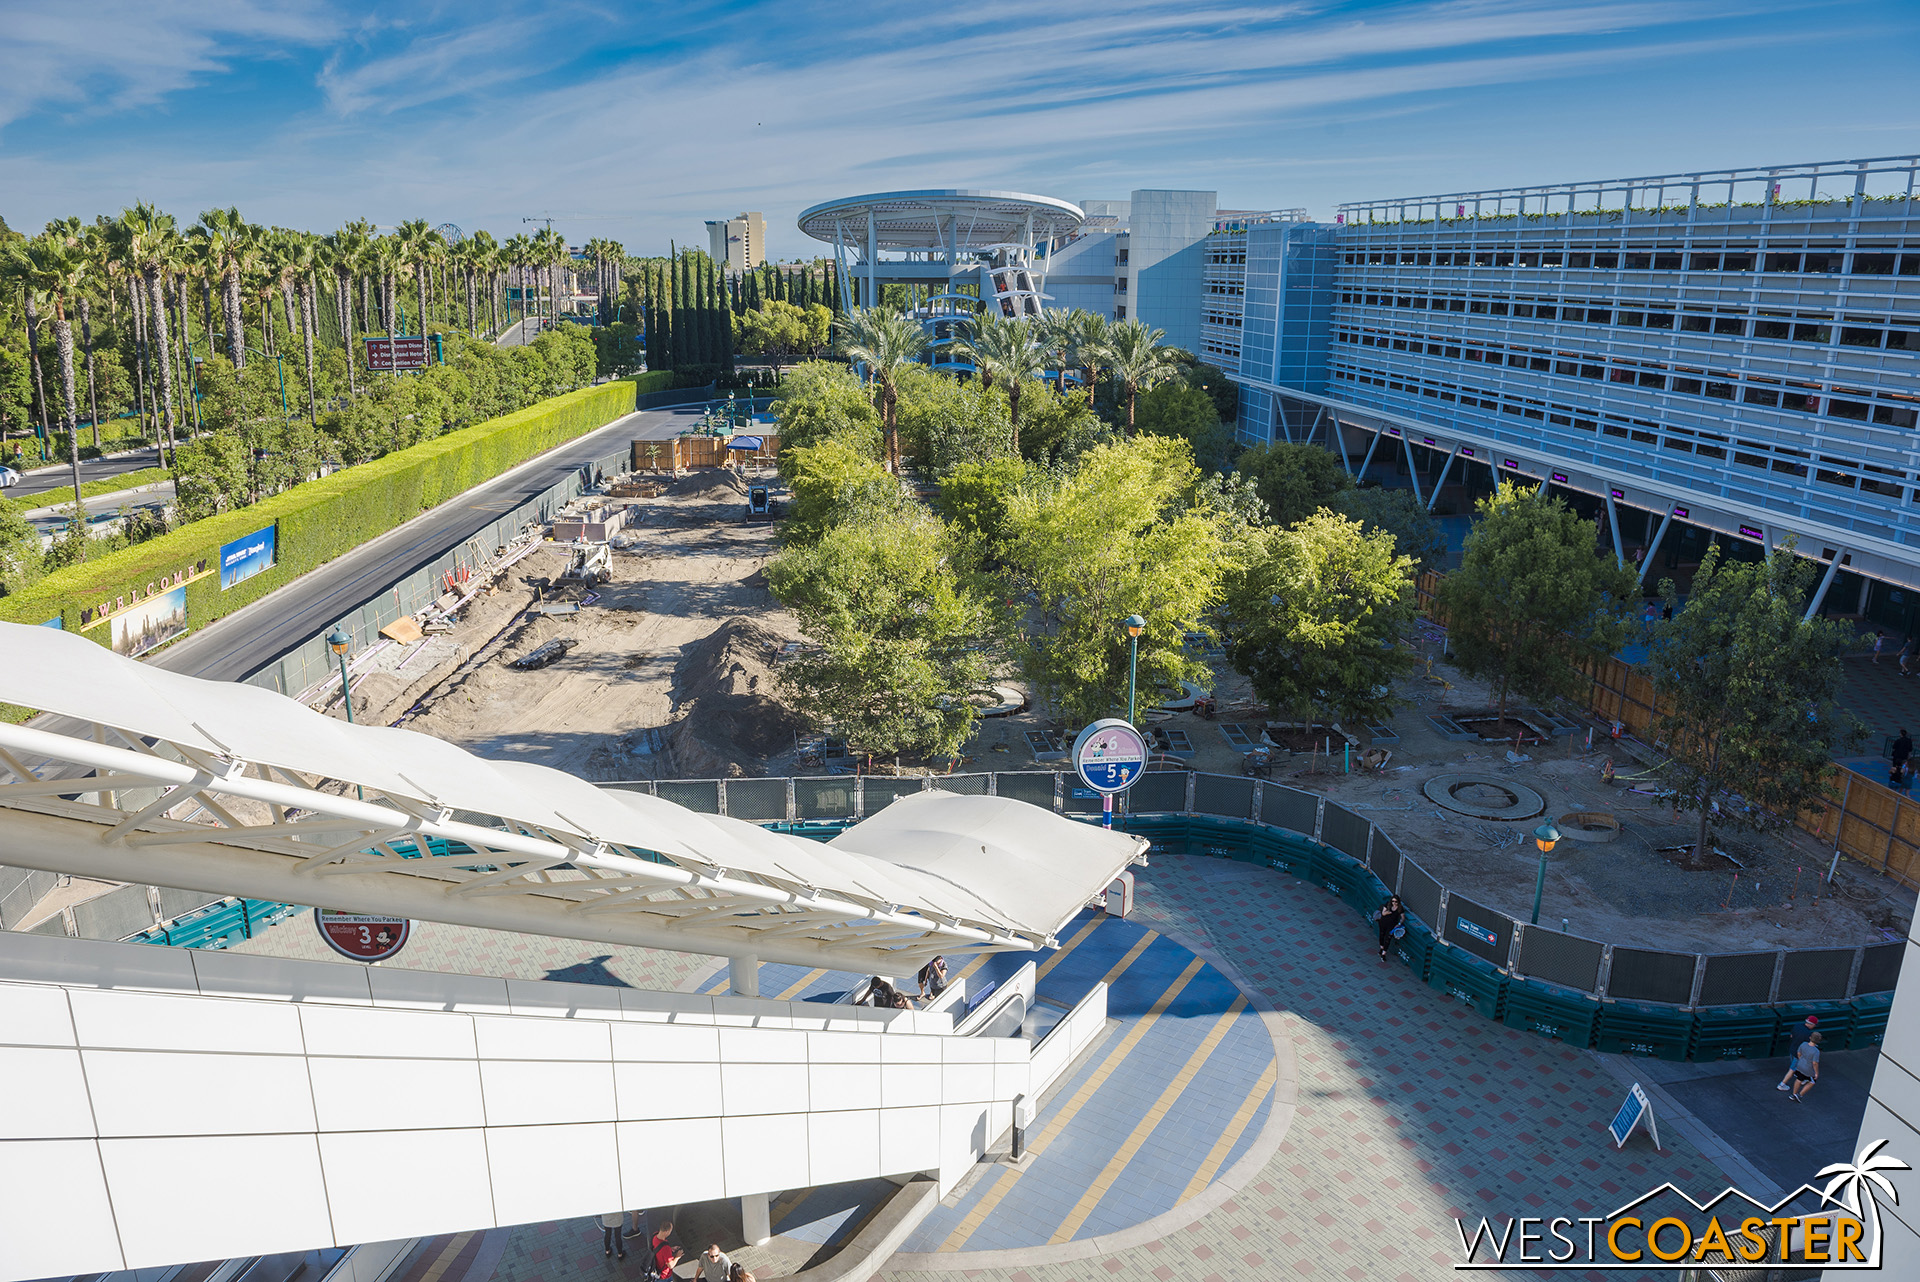 The promenade remains walled off as landscaping is returned to this area, and new paving is put back.